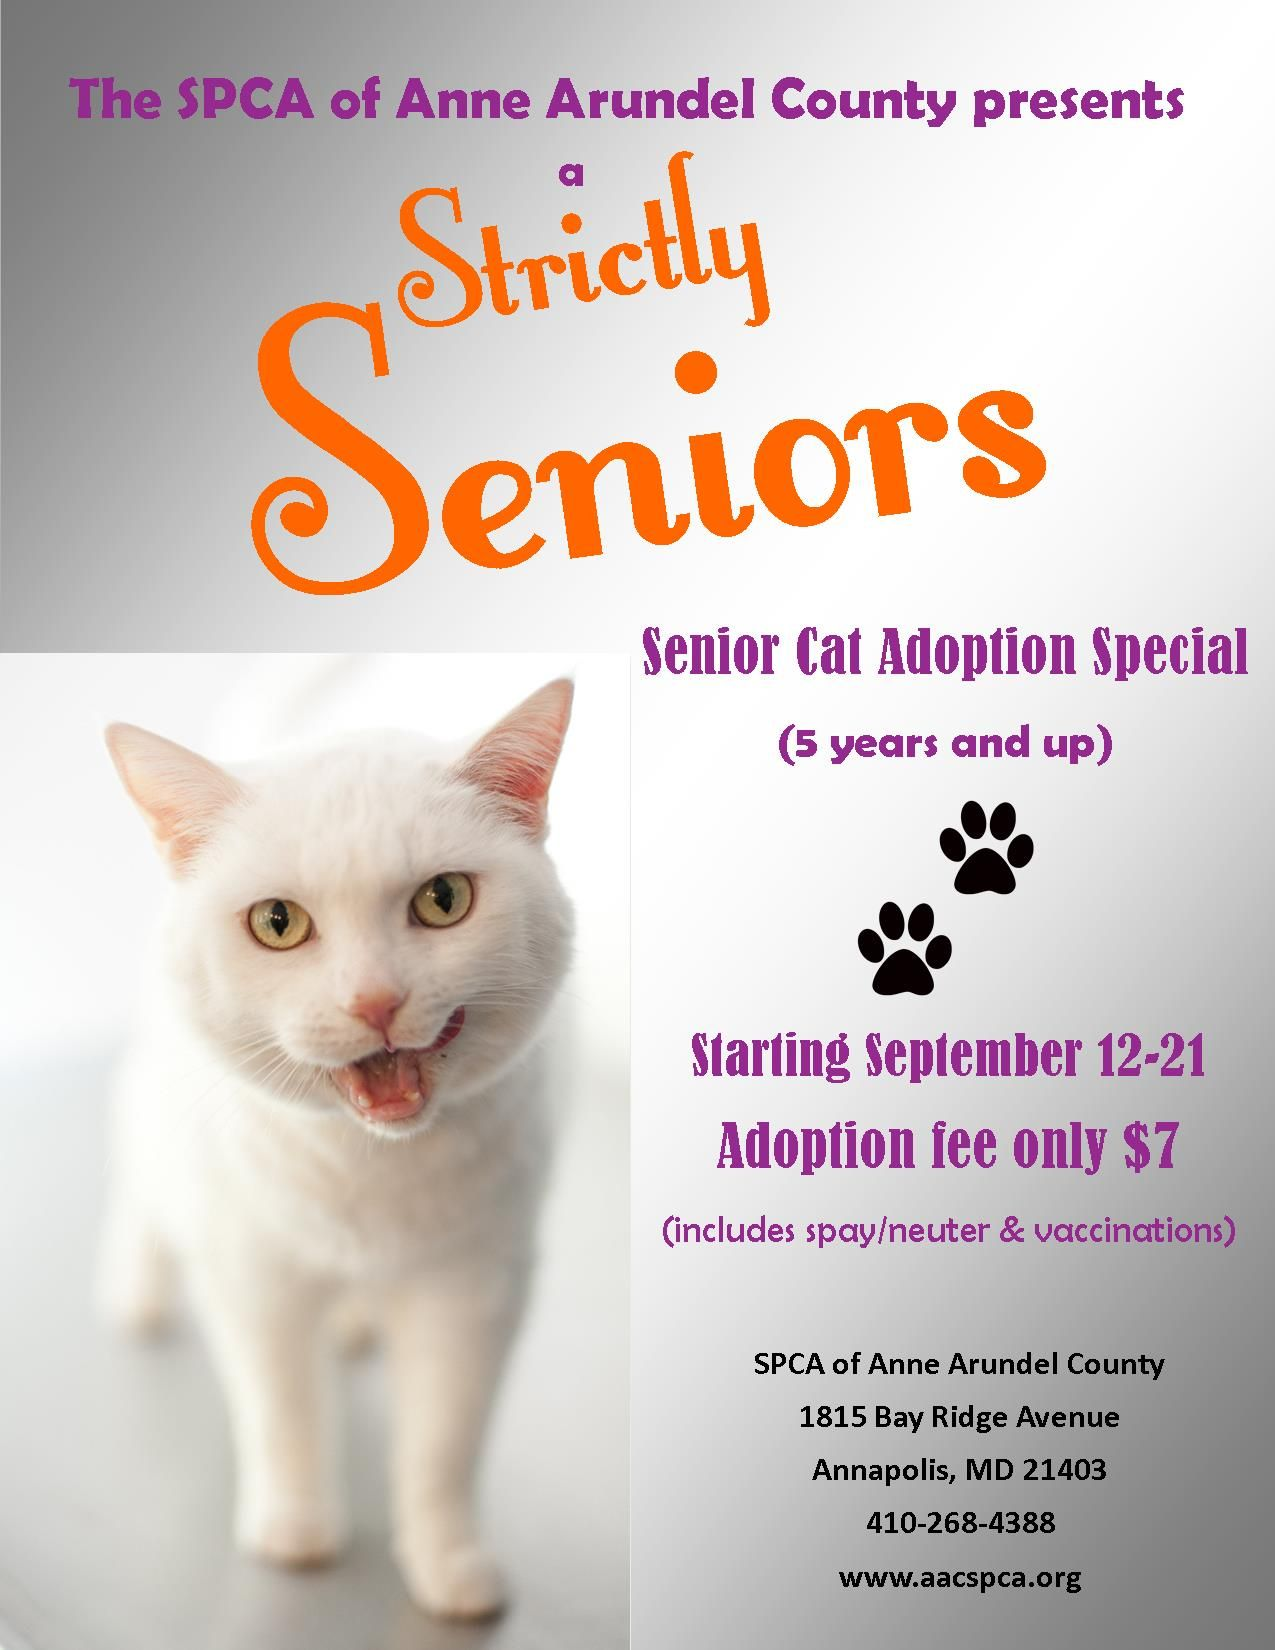 Senior Cat Adoption Special Cat Adoption Senior Cat Adoption